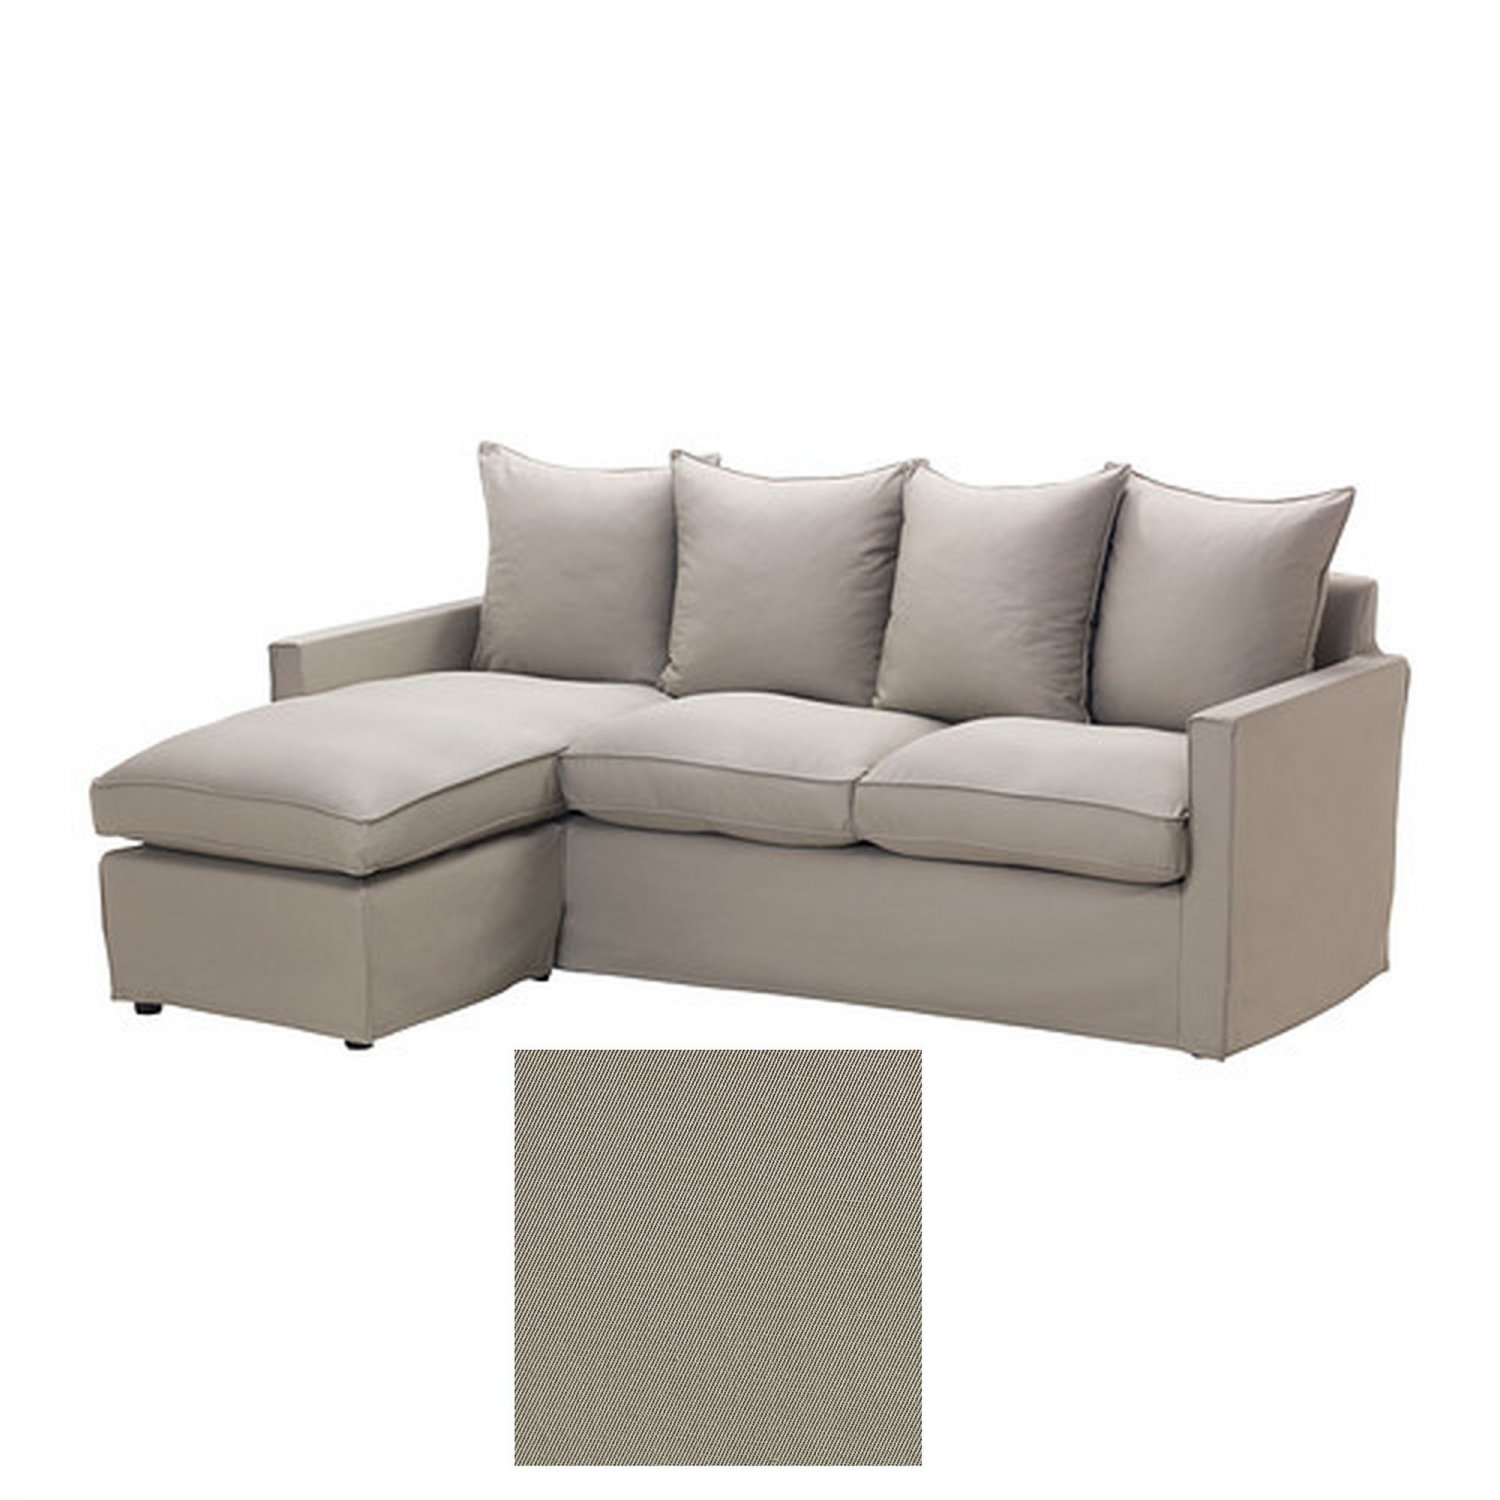 ikea harnosand 2 seat loveseat sofa with chaise slipcover